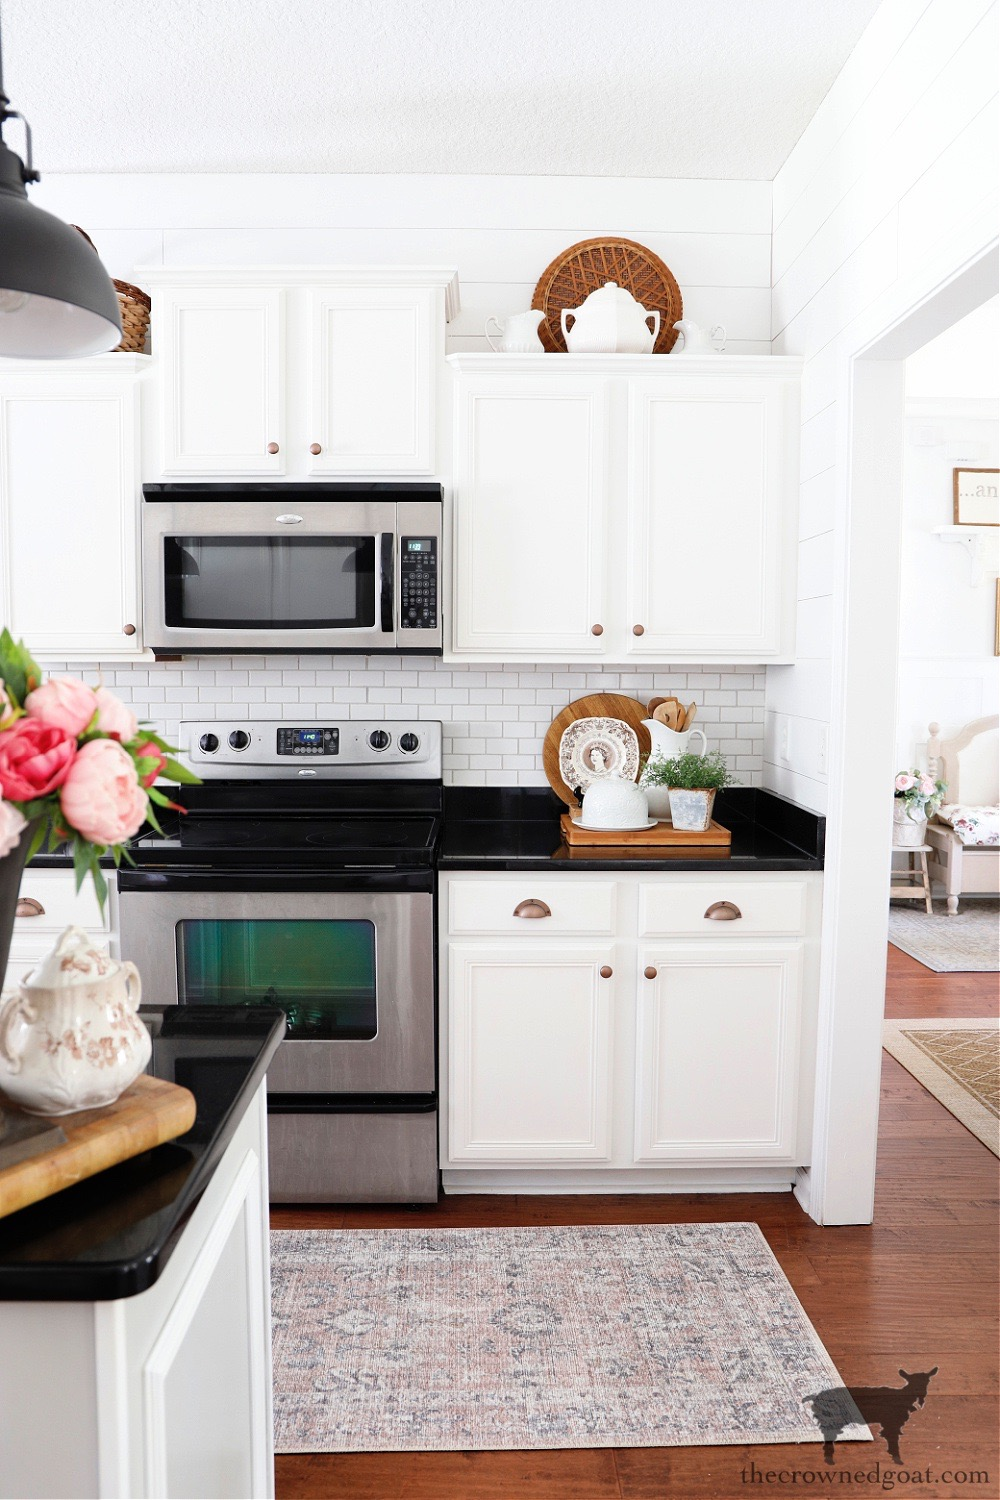 How to Easily Change the Color of Existing Grout in a Cottage Style Kitchen-The Crowned Goat